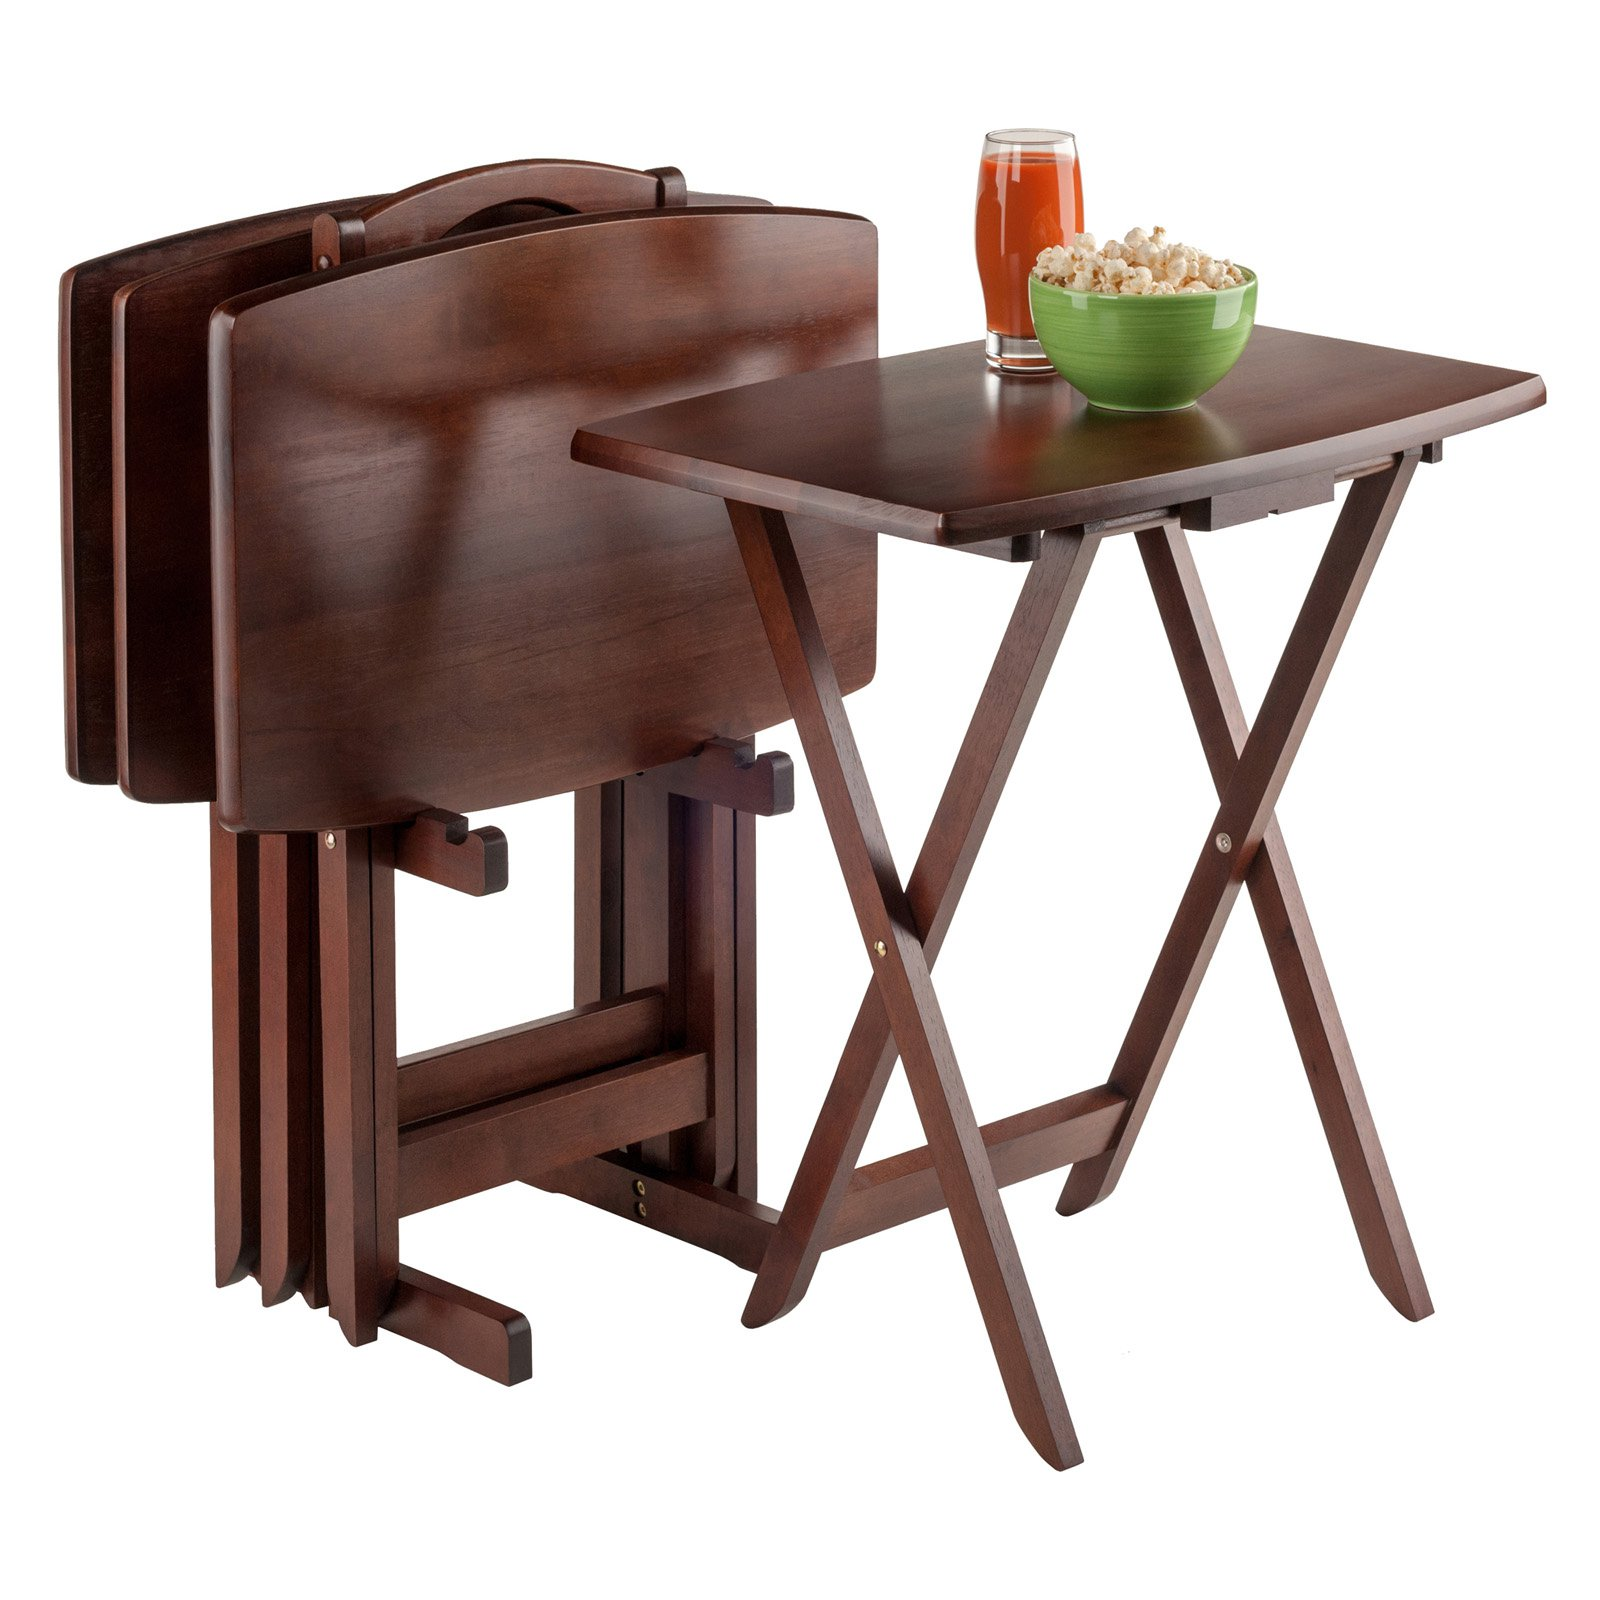 kohls percent coupon code probably fantastic nice walnut coffee winsome piece curved rectangular tray set and end table tables wooden top ideas small round dining stickley